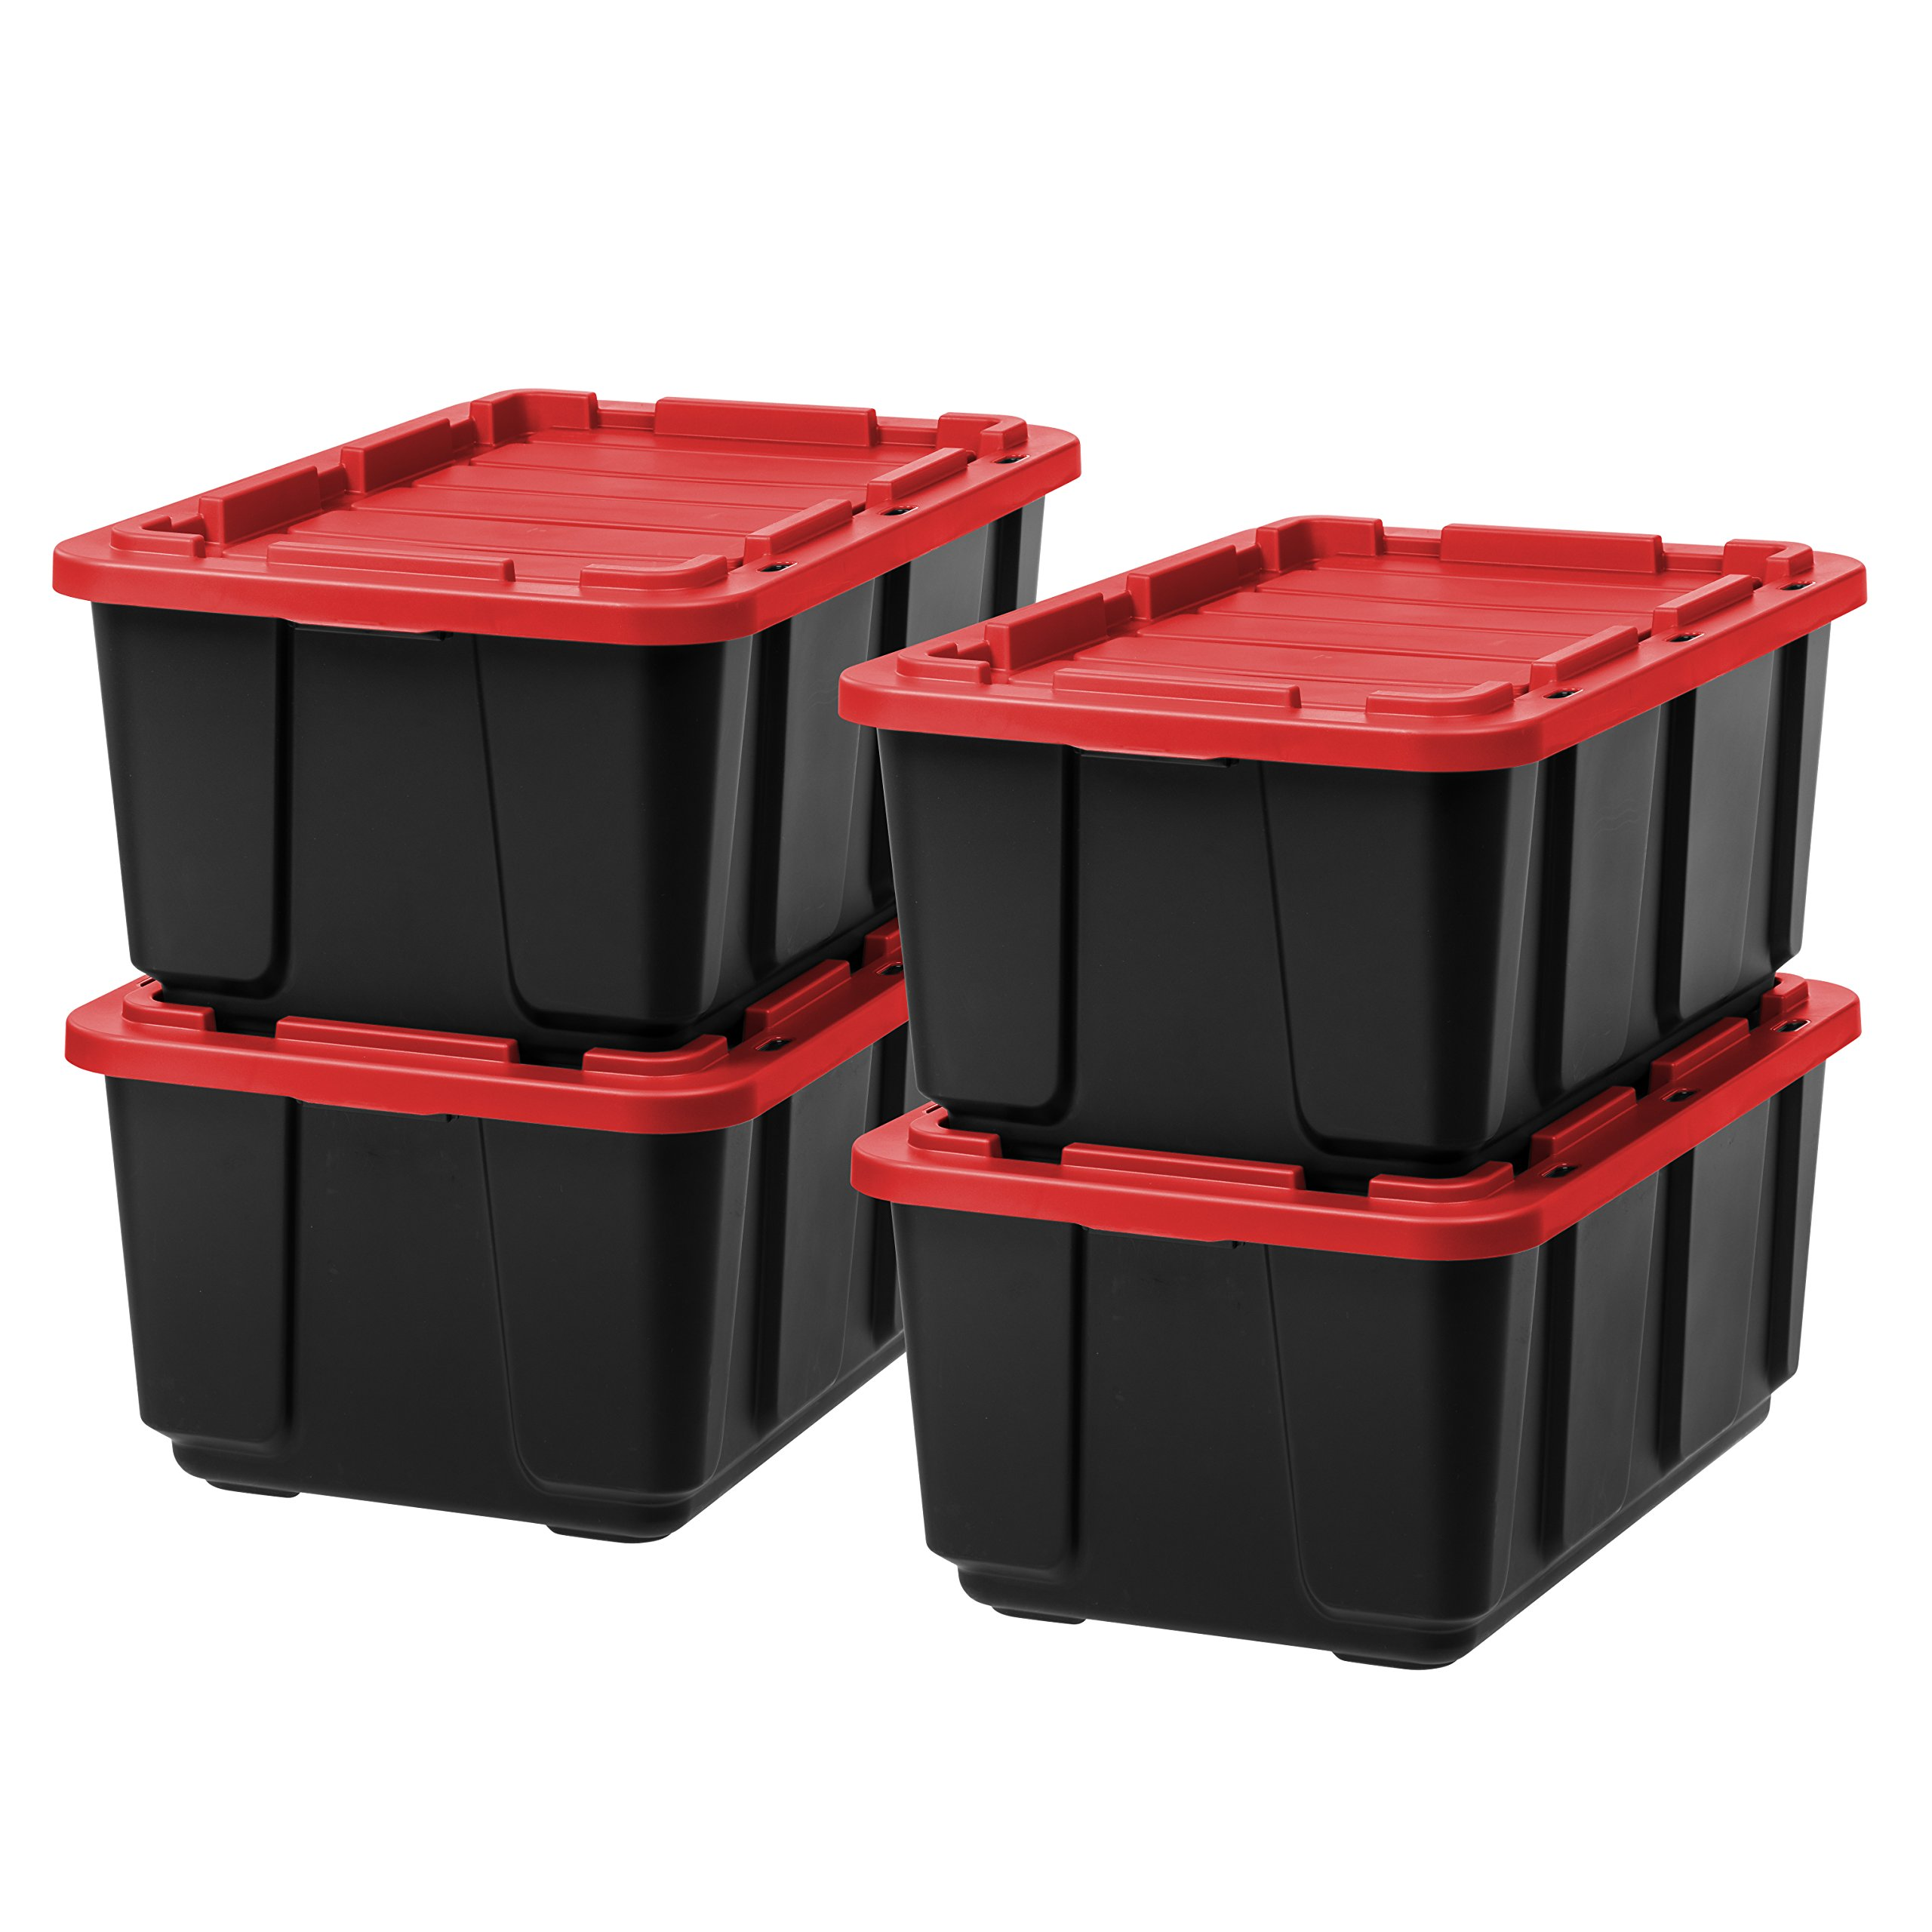 IRIS 27 Gallon Utility Tough Tote, 4 Pack, Black with Red Lid by IRIS USA, Inc.